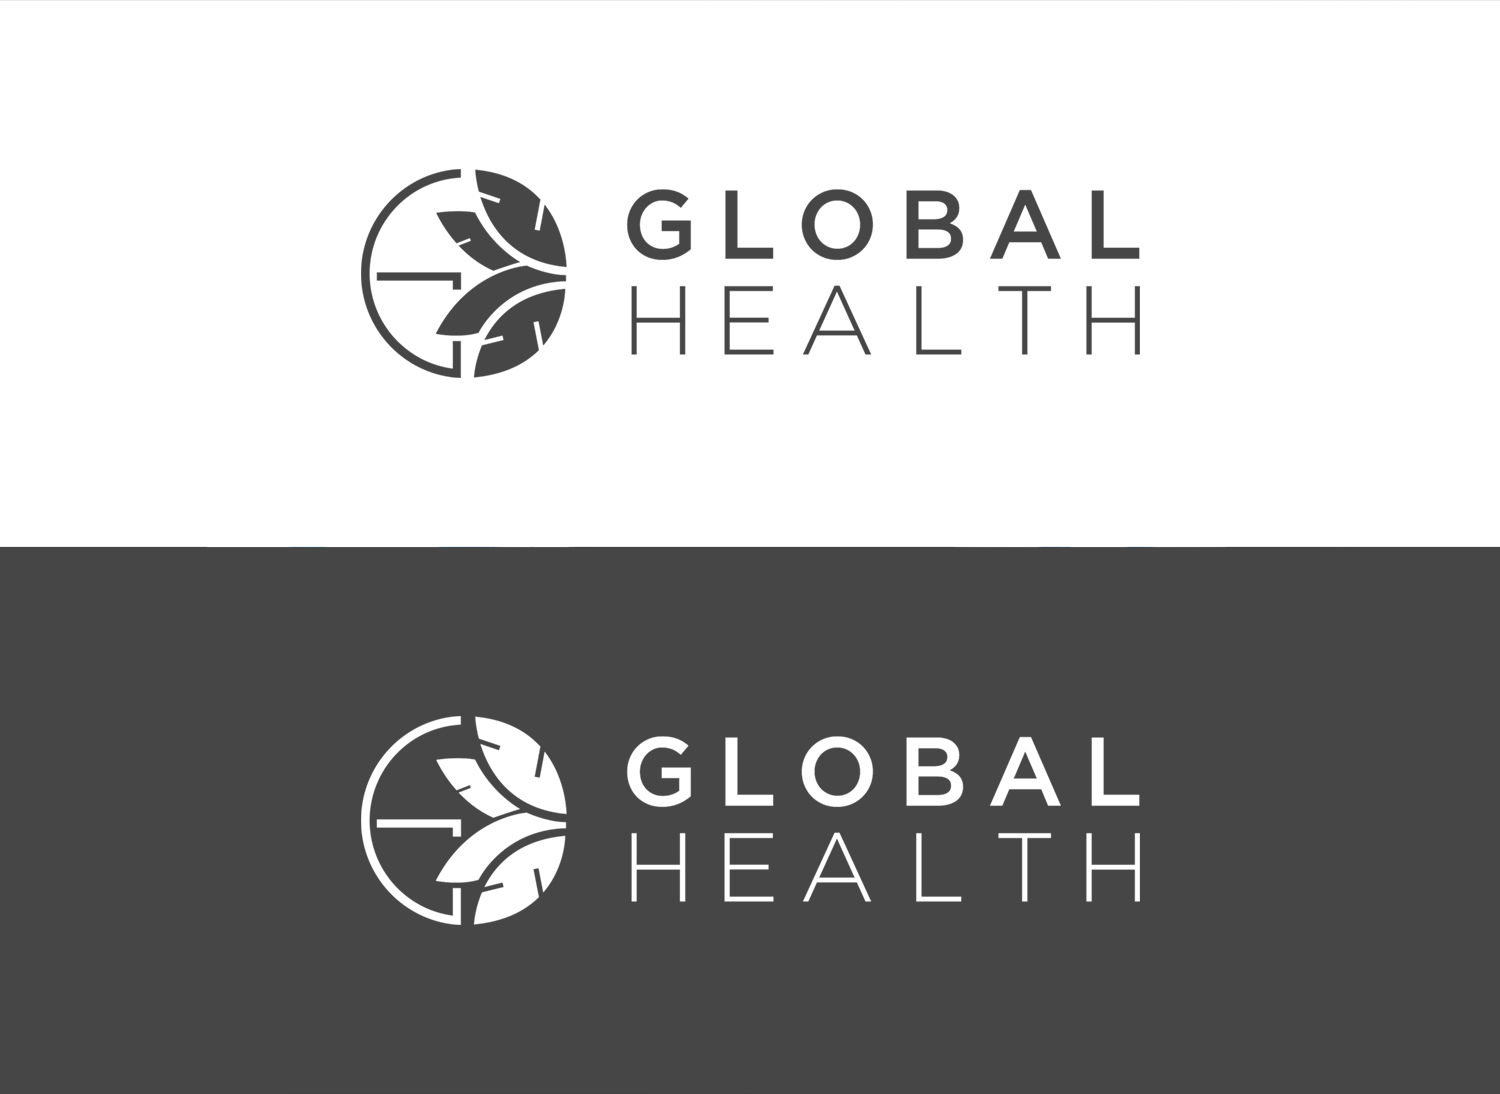 https://www.herzblut-artist.de/wp-content/uploads/2020/11/Logo-Global-Health-Grafikdesign-Herzblut-02.jpg